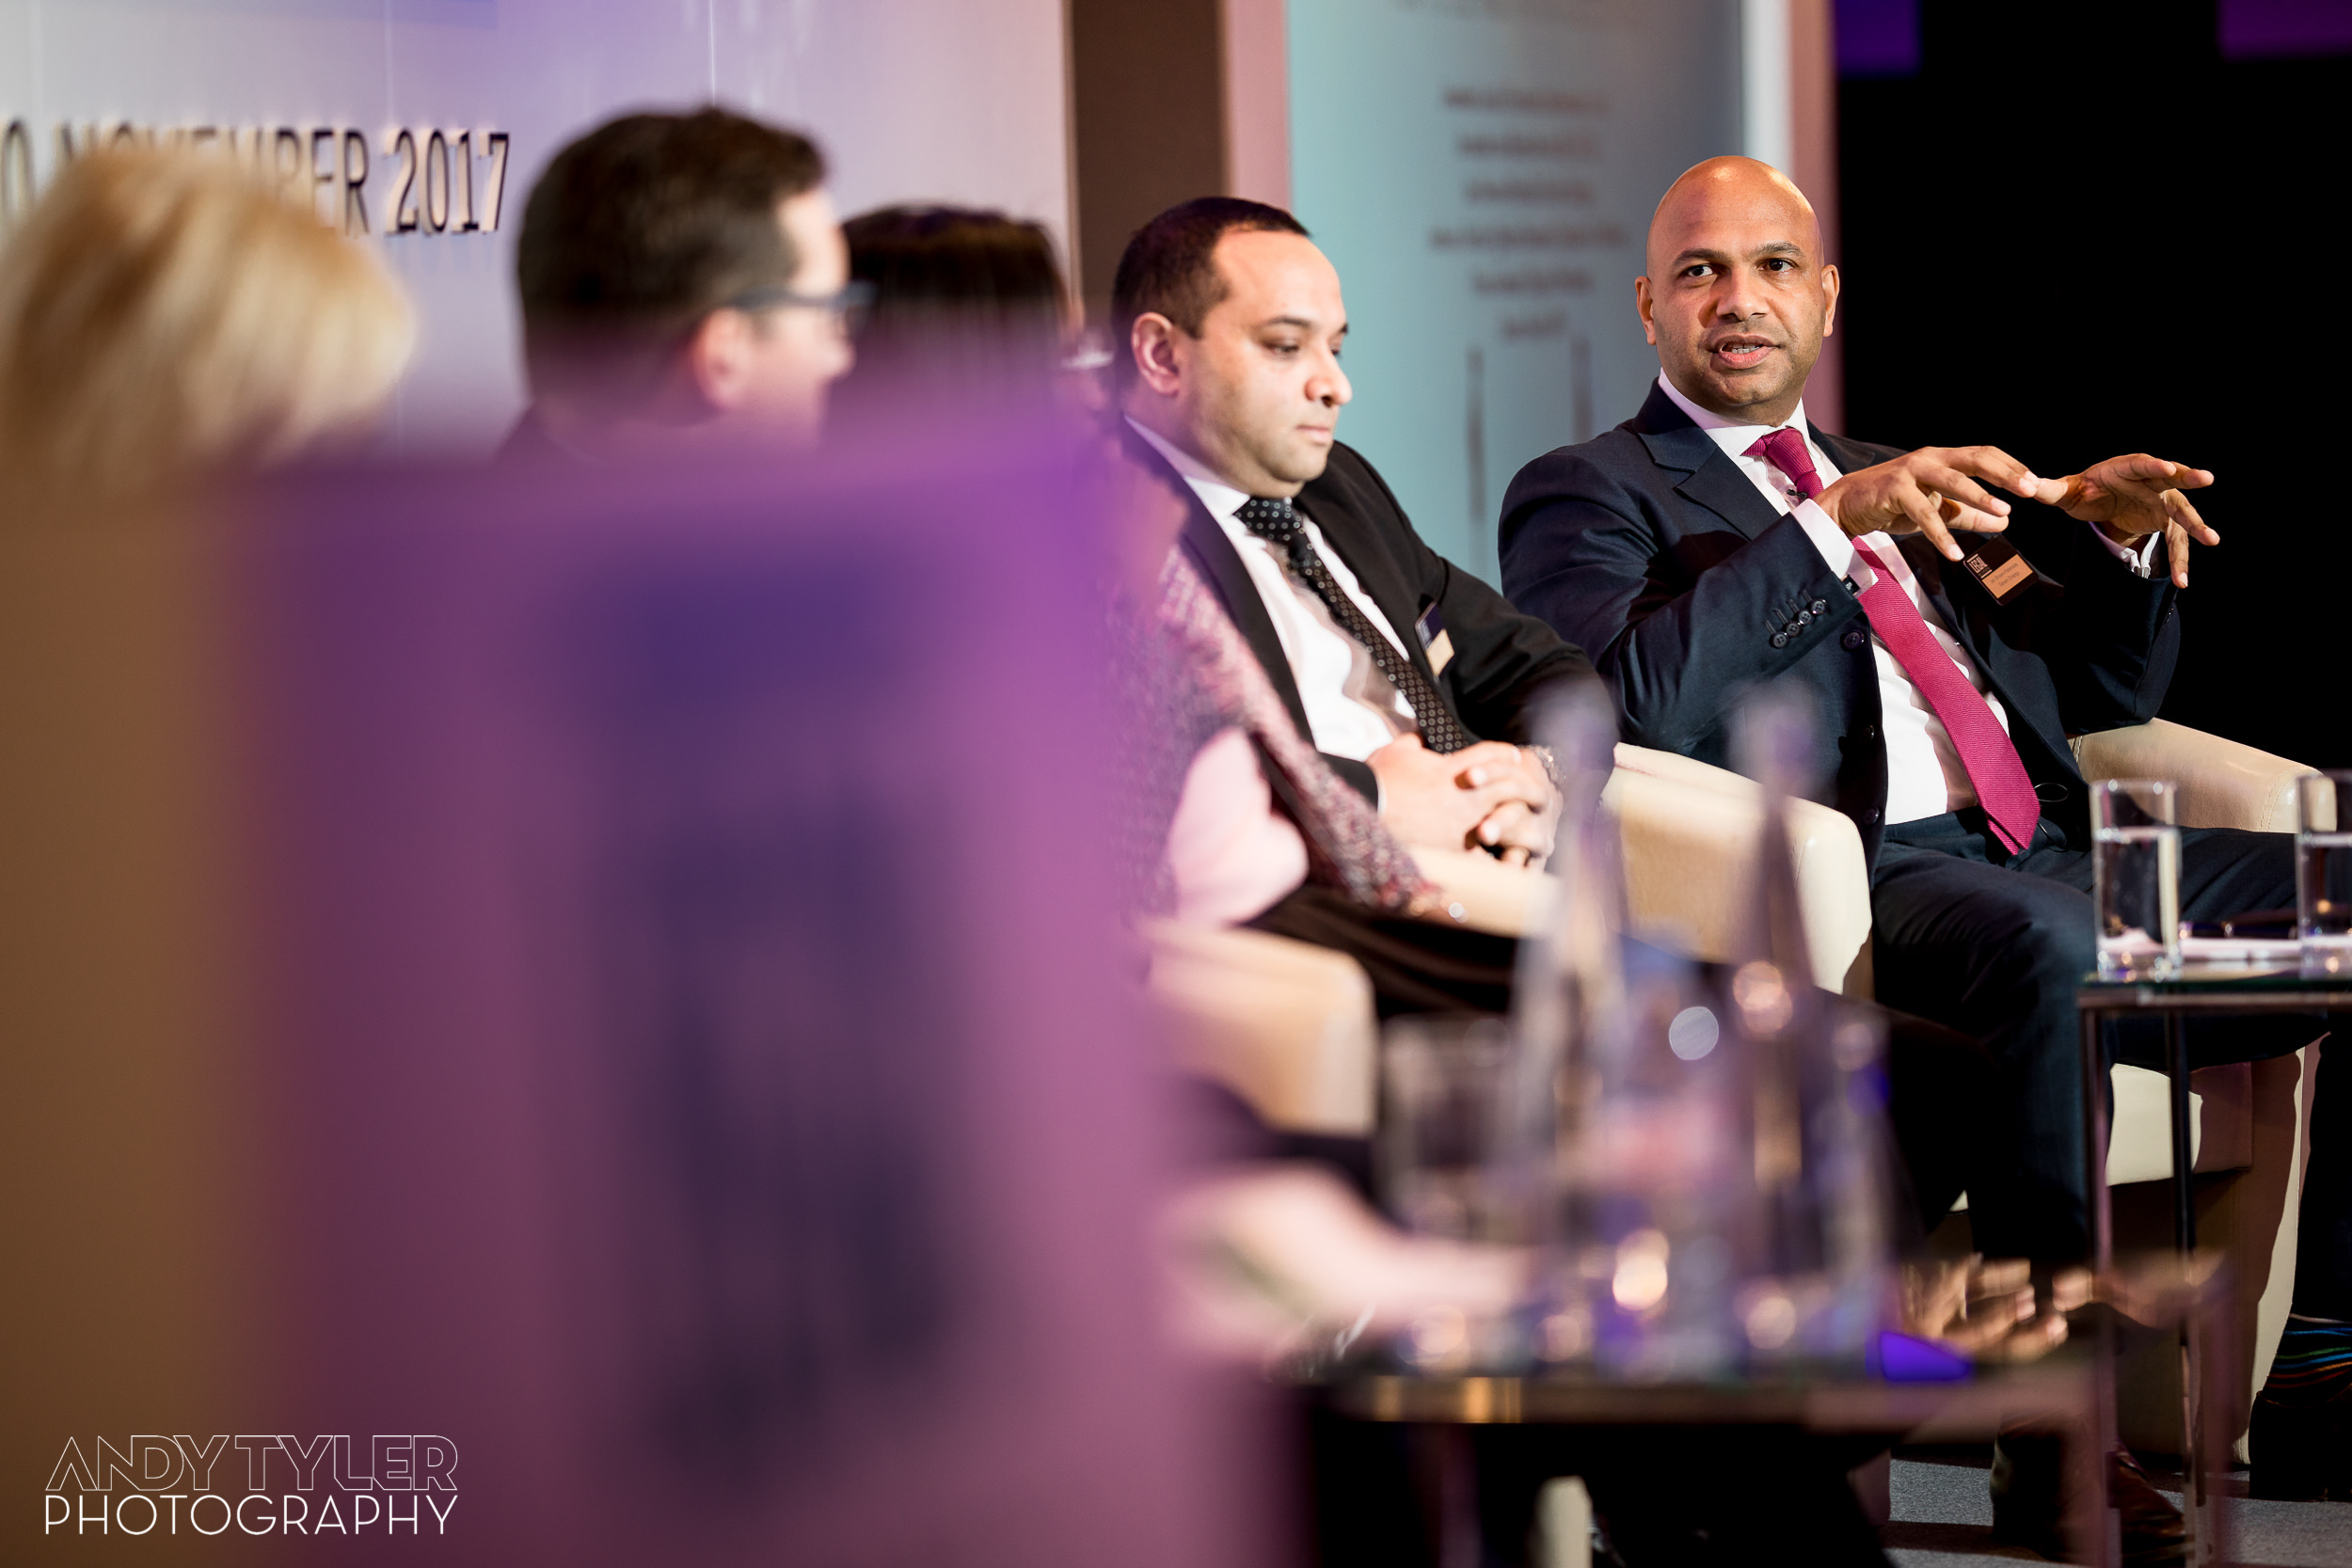 Andy_Tyler_Photography_Business_Conference_010_Andy_Tyler_Photography_096_5DA_0512.jpg